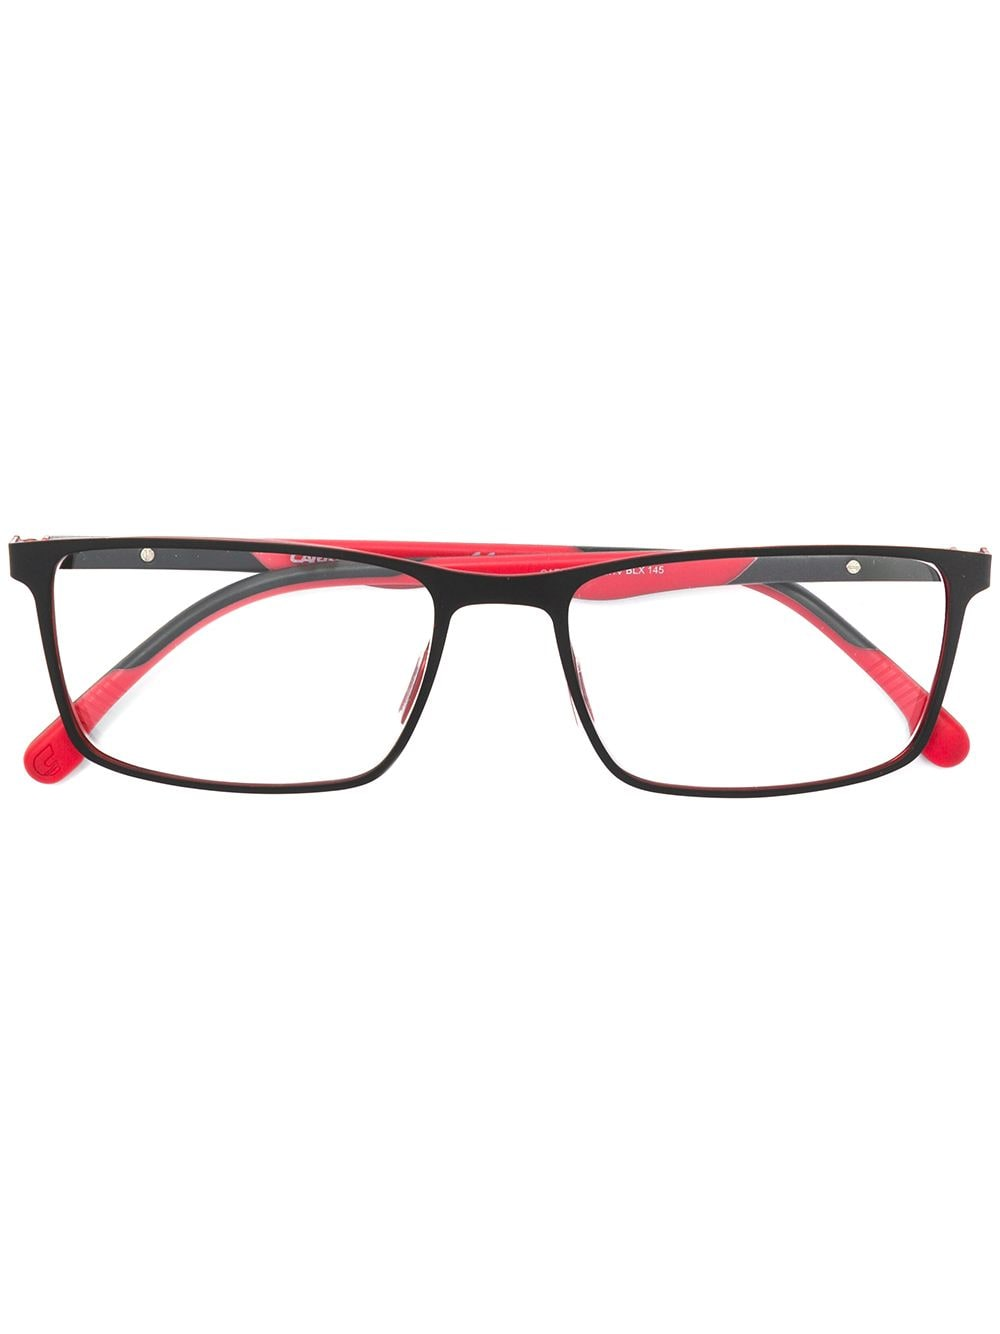 Carrera CA8811FIR55 Frame 55 mm Matte Black with Demo Lens Lens